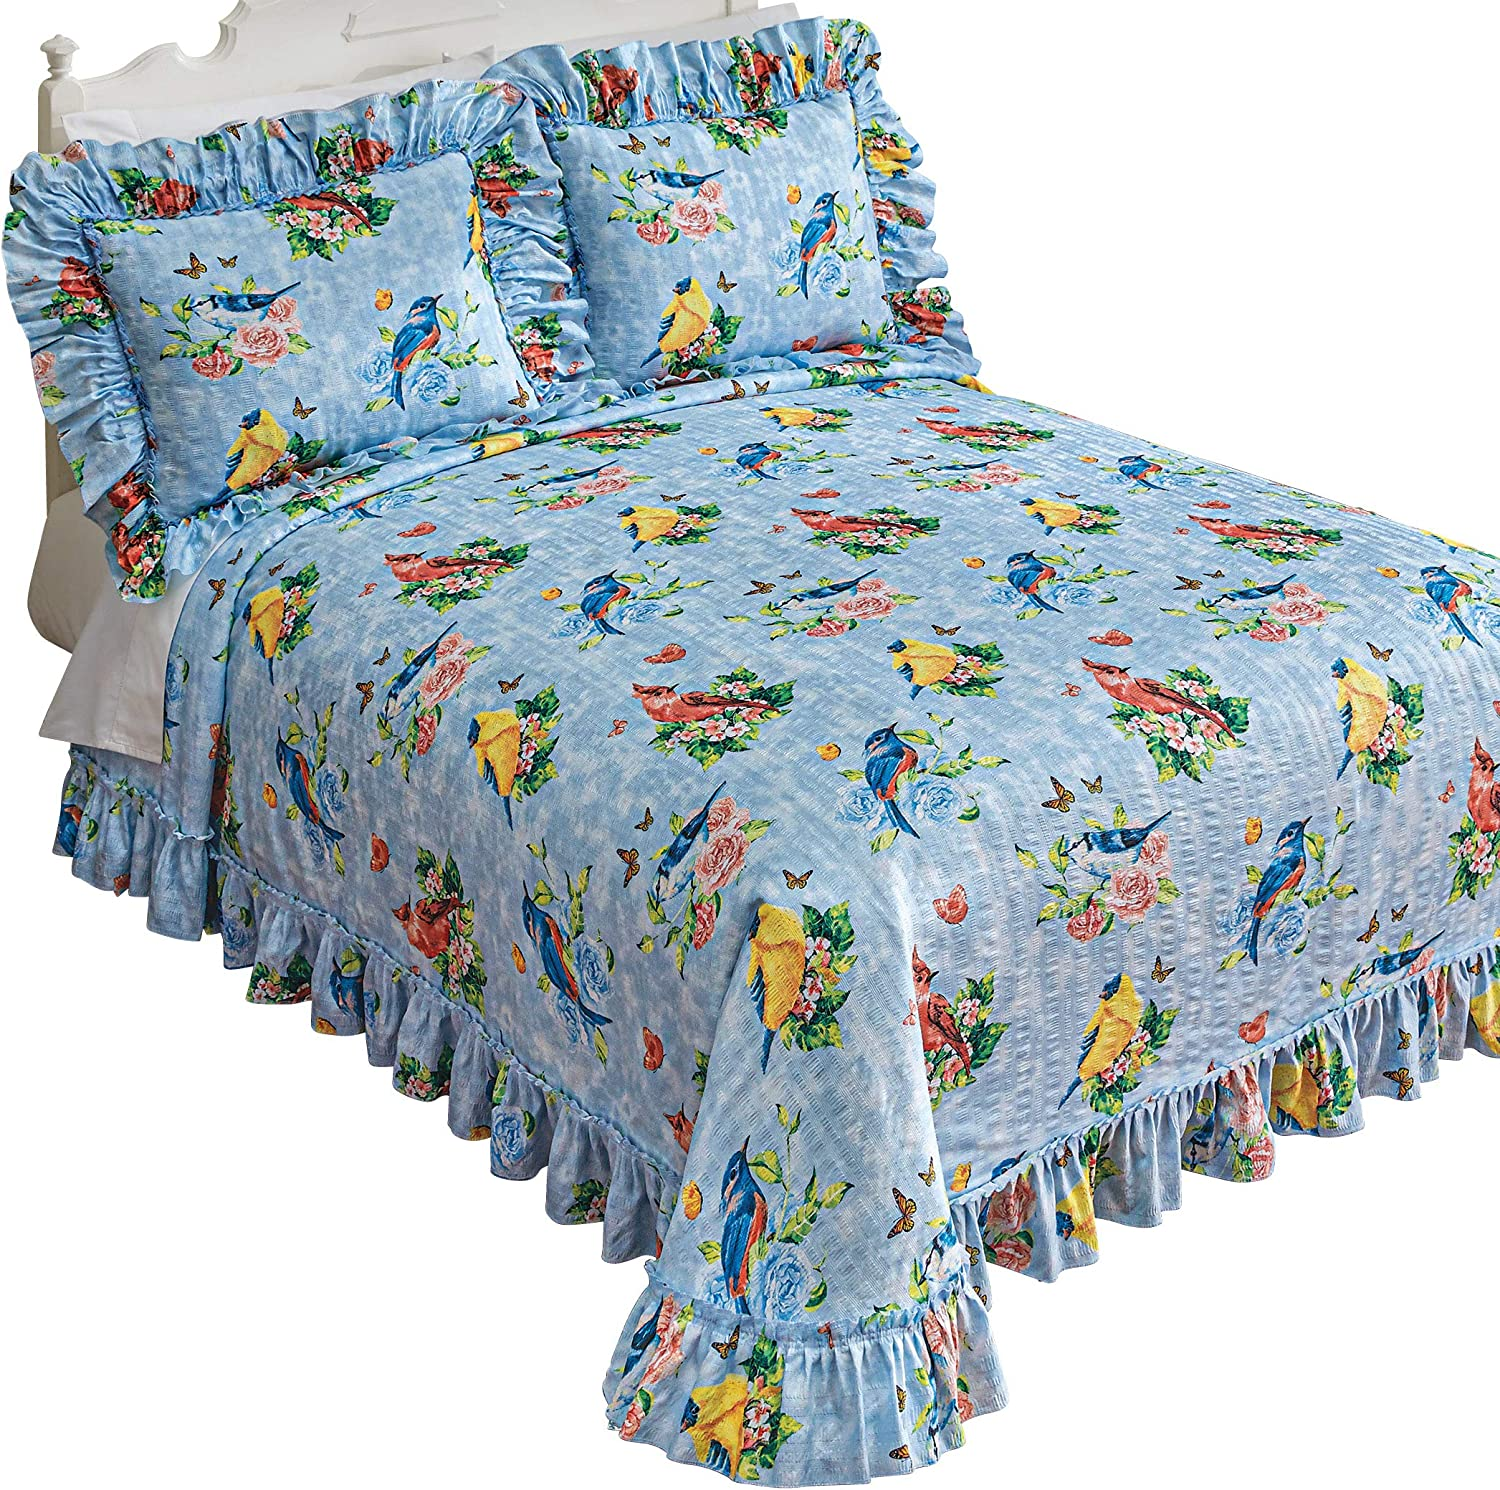 Elegant Addition to Any Home Polyester Queen Cotton King Attached Ruffle Luxurious Texture Lightweight Machine Washable Sky Blue Twin Full Beautiful Birds Sanctuary Plisse Bedspread